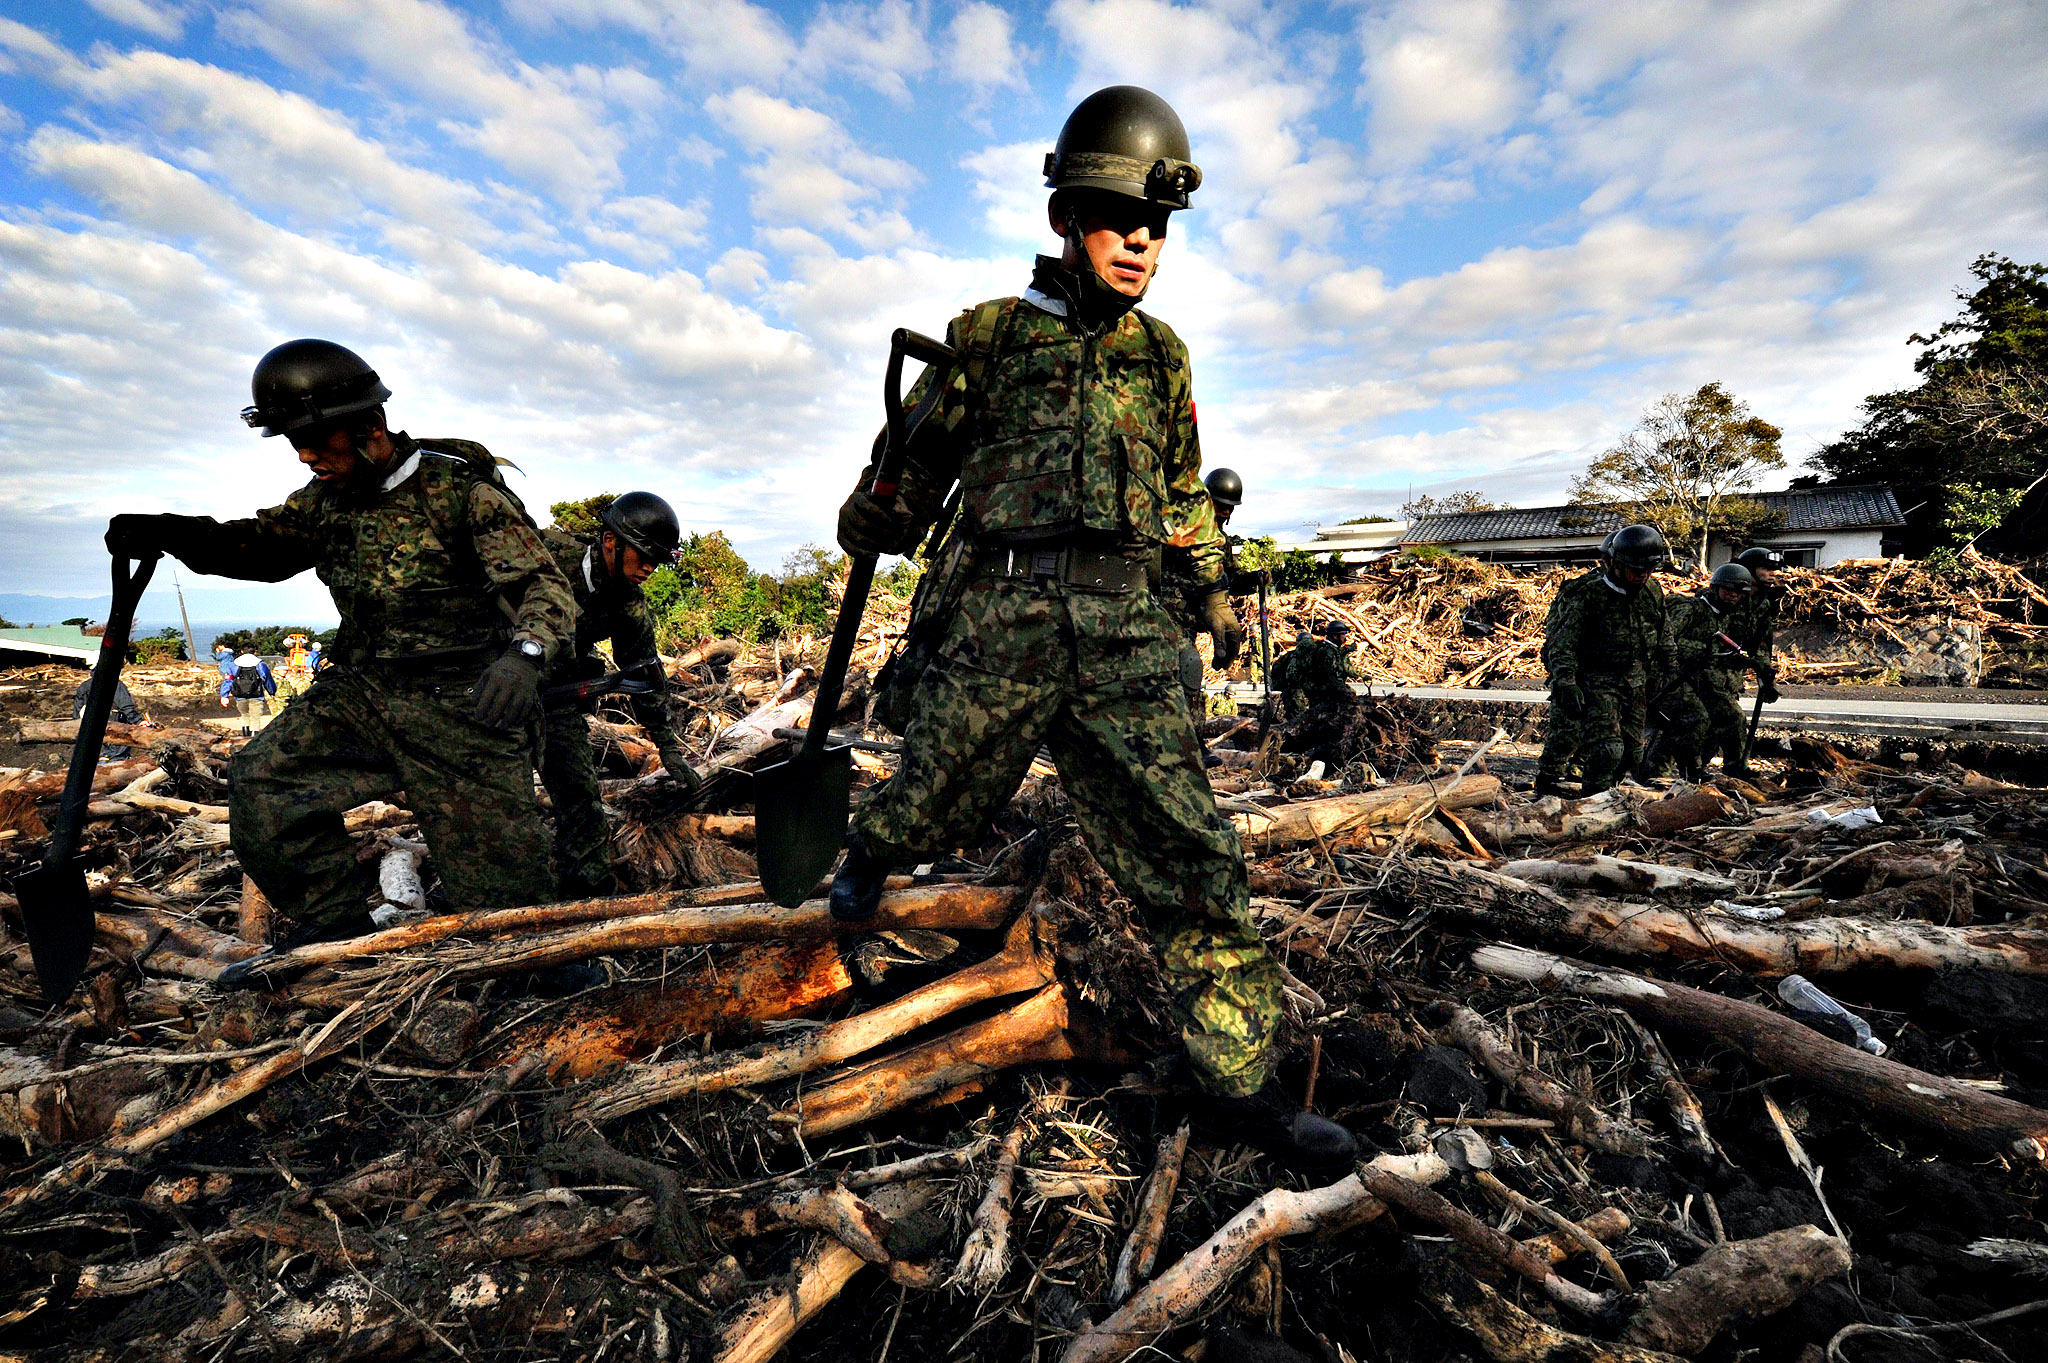 Ground Self-Defense Force rescue member search for survivors after a landslide caused by heavy rains brought on by typhoon Wipha buried houses at Oshima island, 120km south of Tokyo on October 17, 2013. At least 17 people died as a powerful typhoon lashed Japan's Pacific coast, with dozens still missing and the death toll likely to rise.